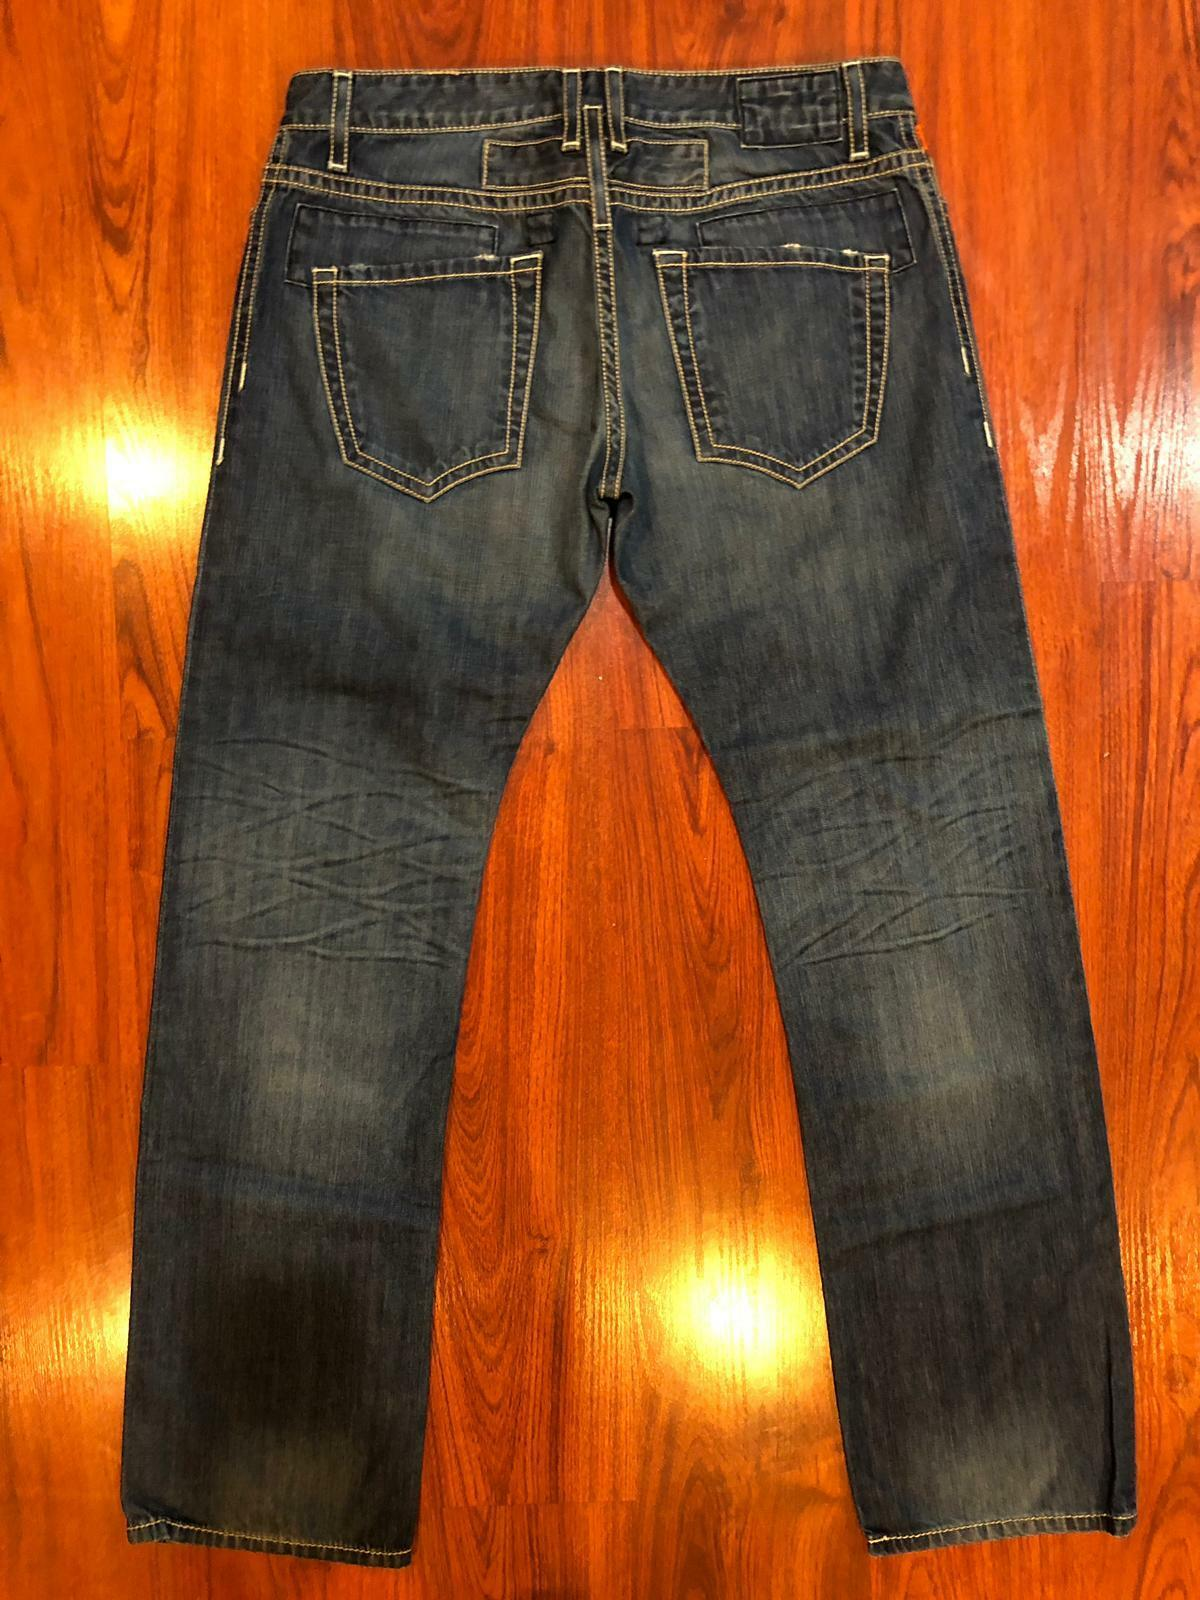 NEW Authentic Robin's Jeans Mens 38 D5957 Straight Leg Classic Light Distressed